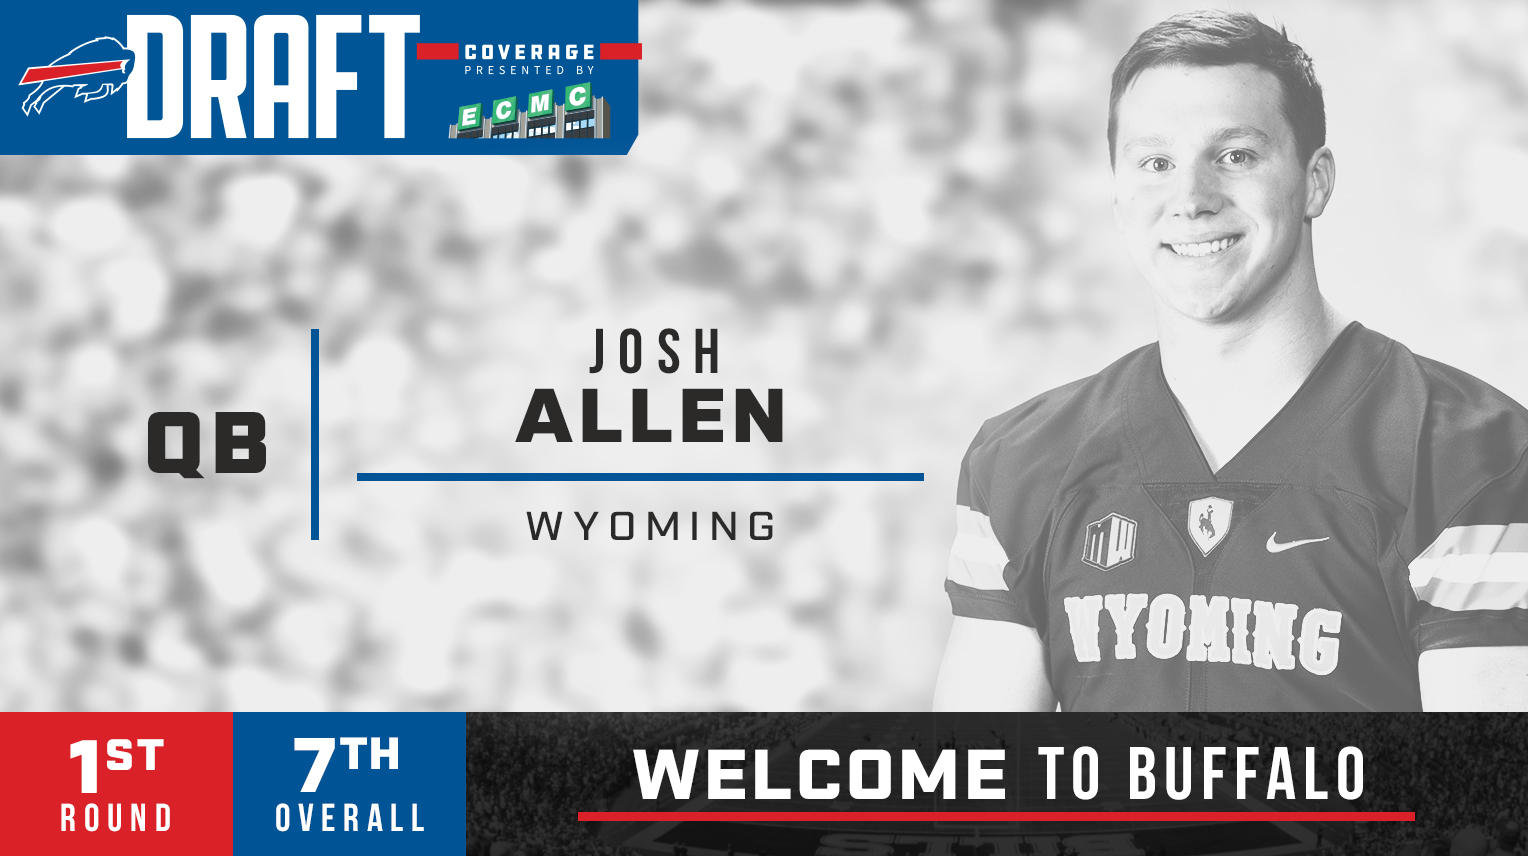 Josh Allen confident tweets won't impact NFL Draft stock